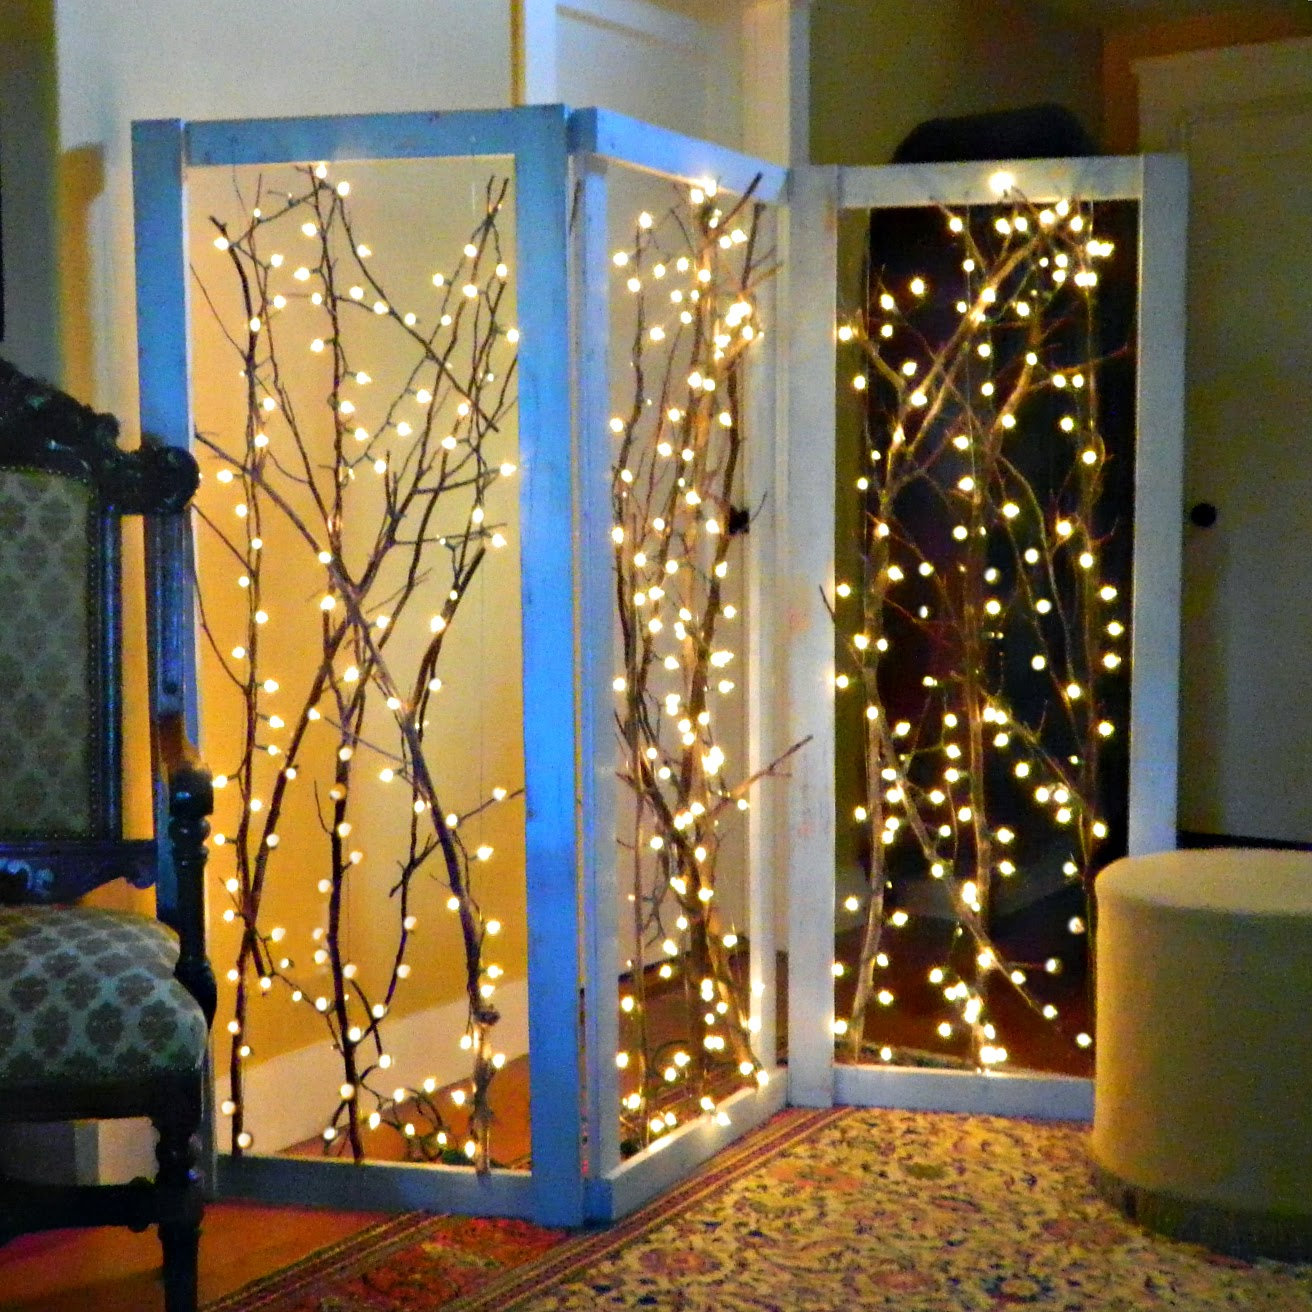 Diy Wall Decor Lights : Mark montano twinkling branches room divider diy